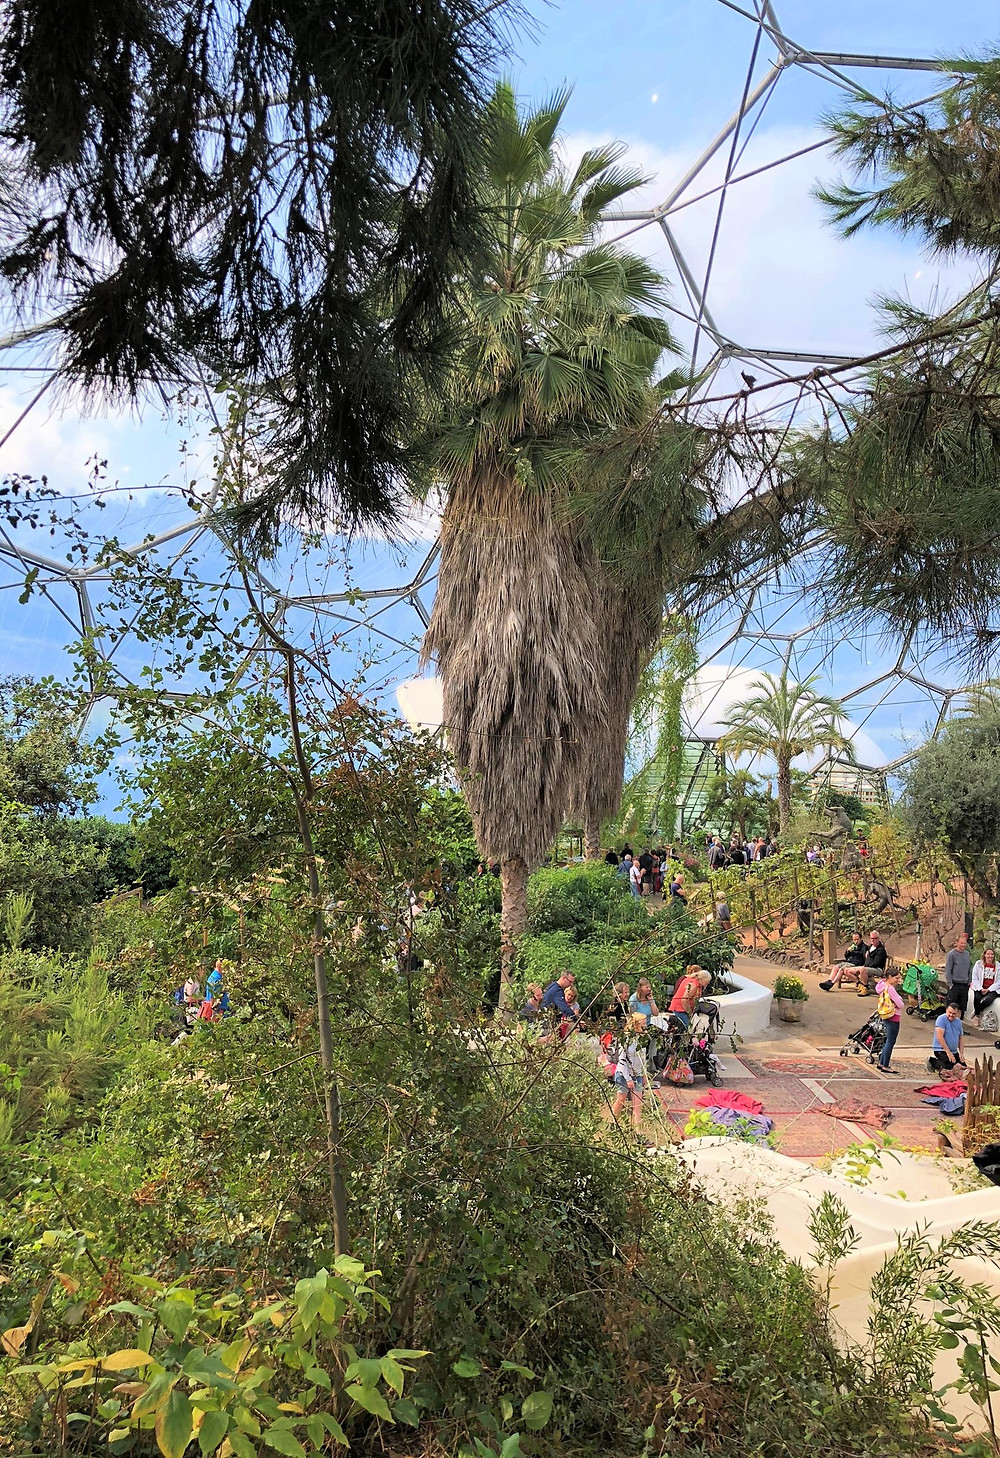 The Mediterranean Biome in the Eden Project is home to over 1,300 different plant species